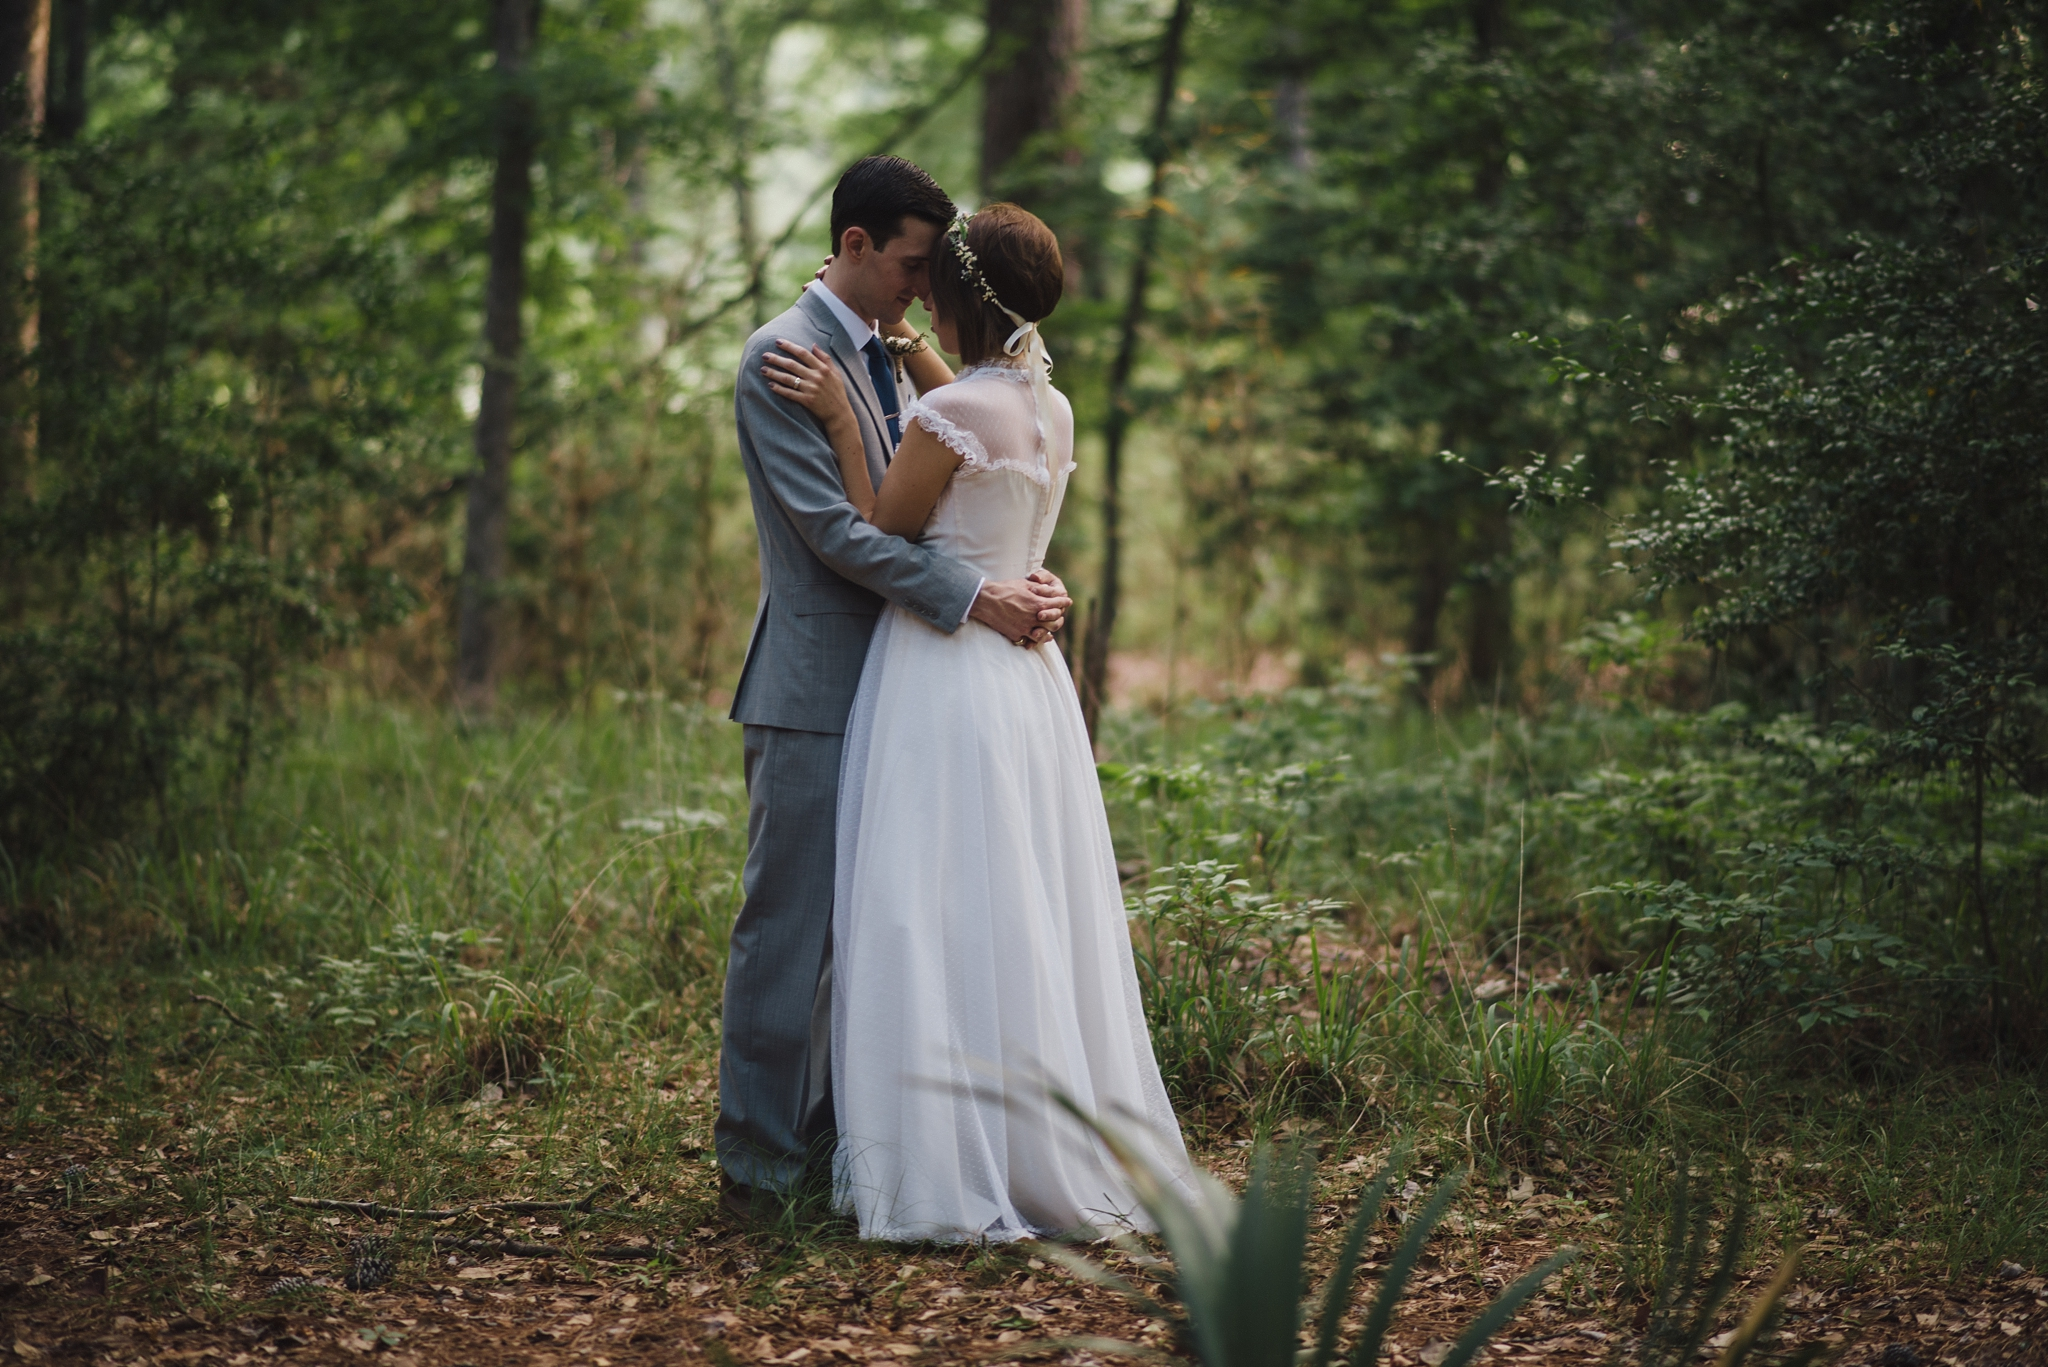 kaihla_tonai_intimate_wedding_elopement_photographer_0029